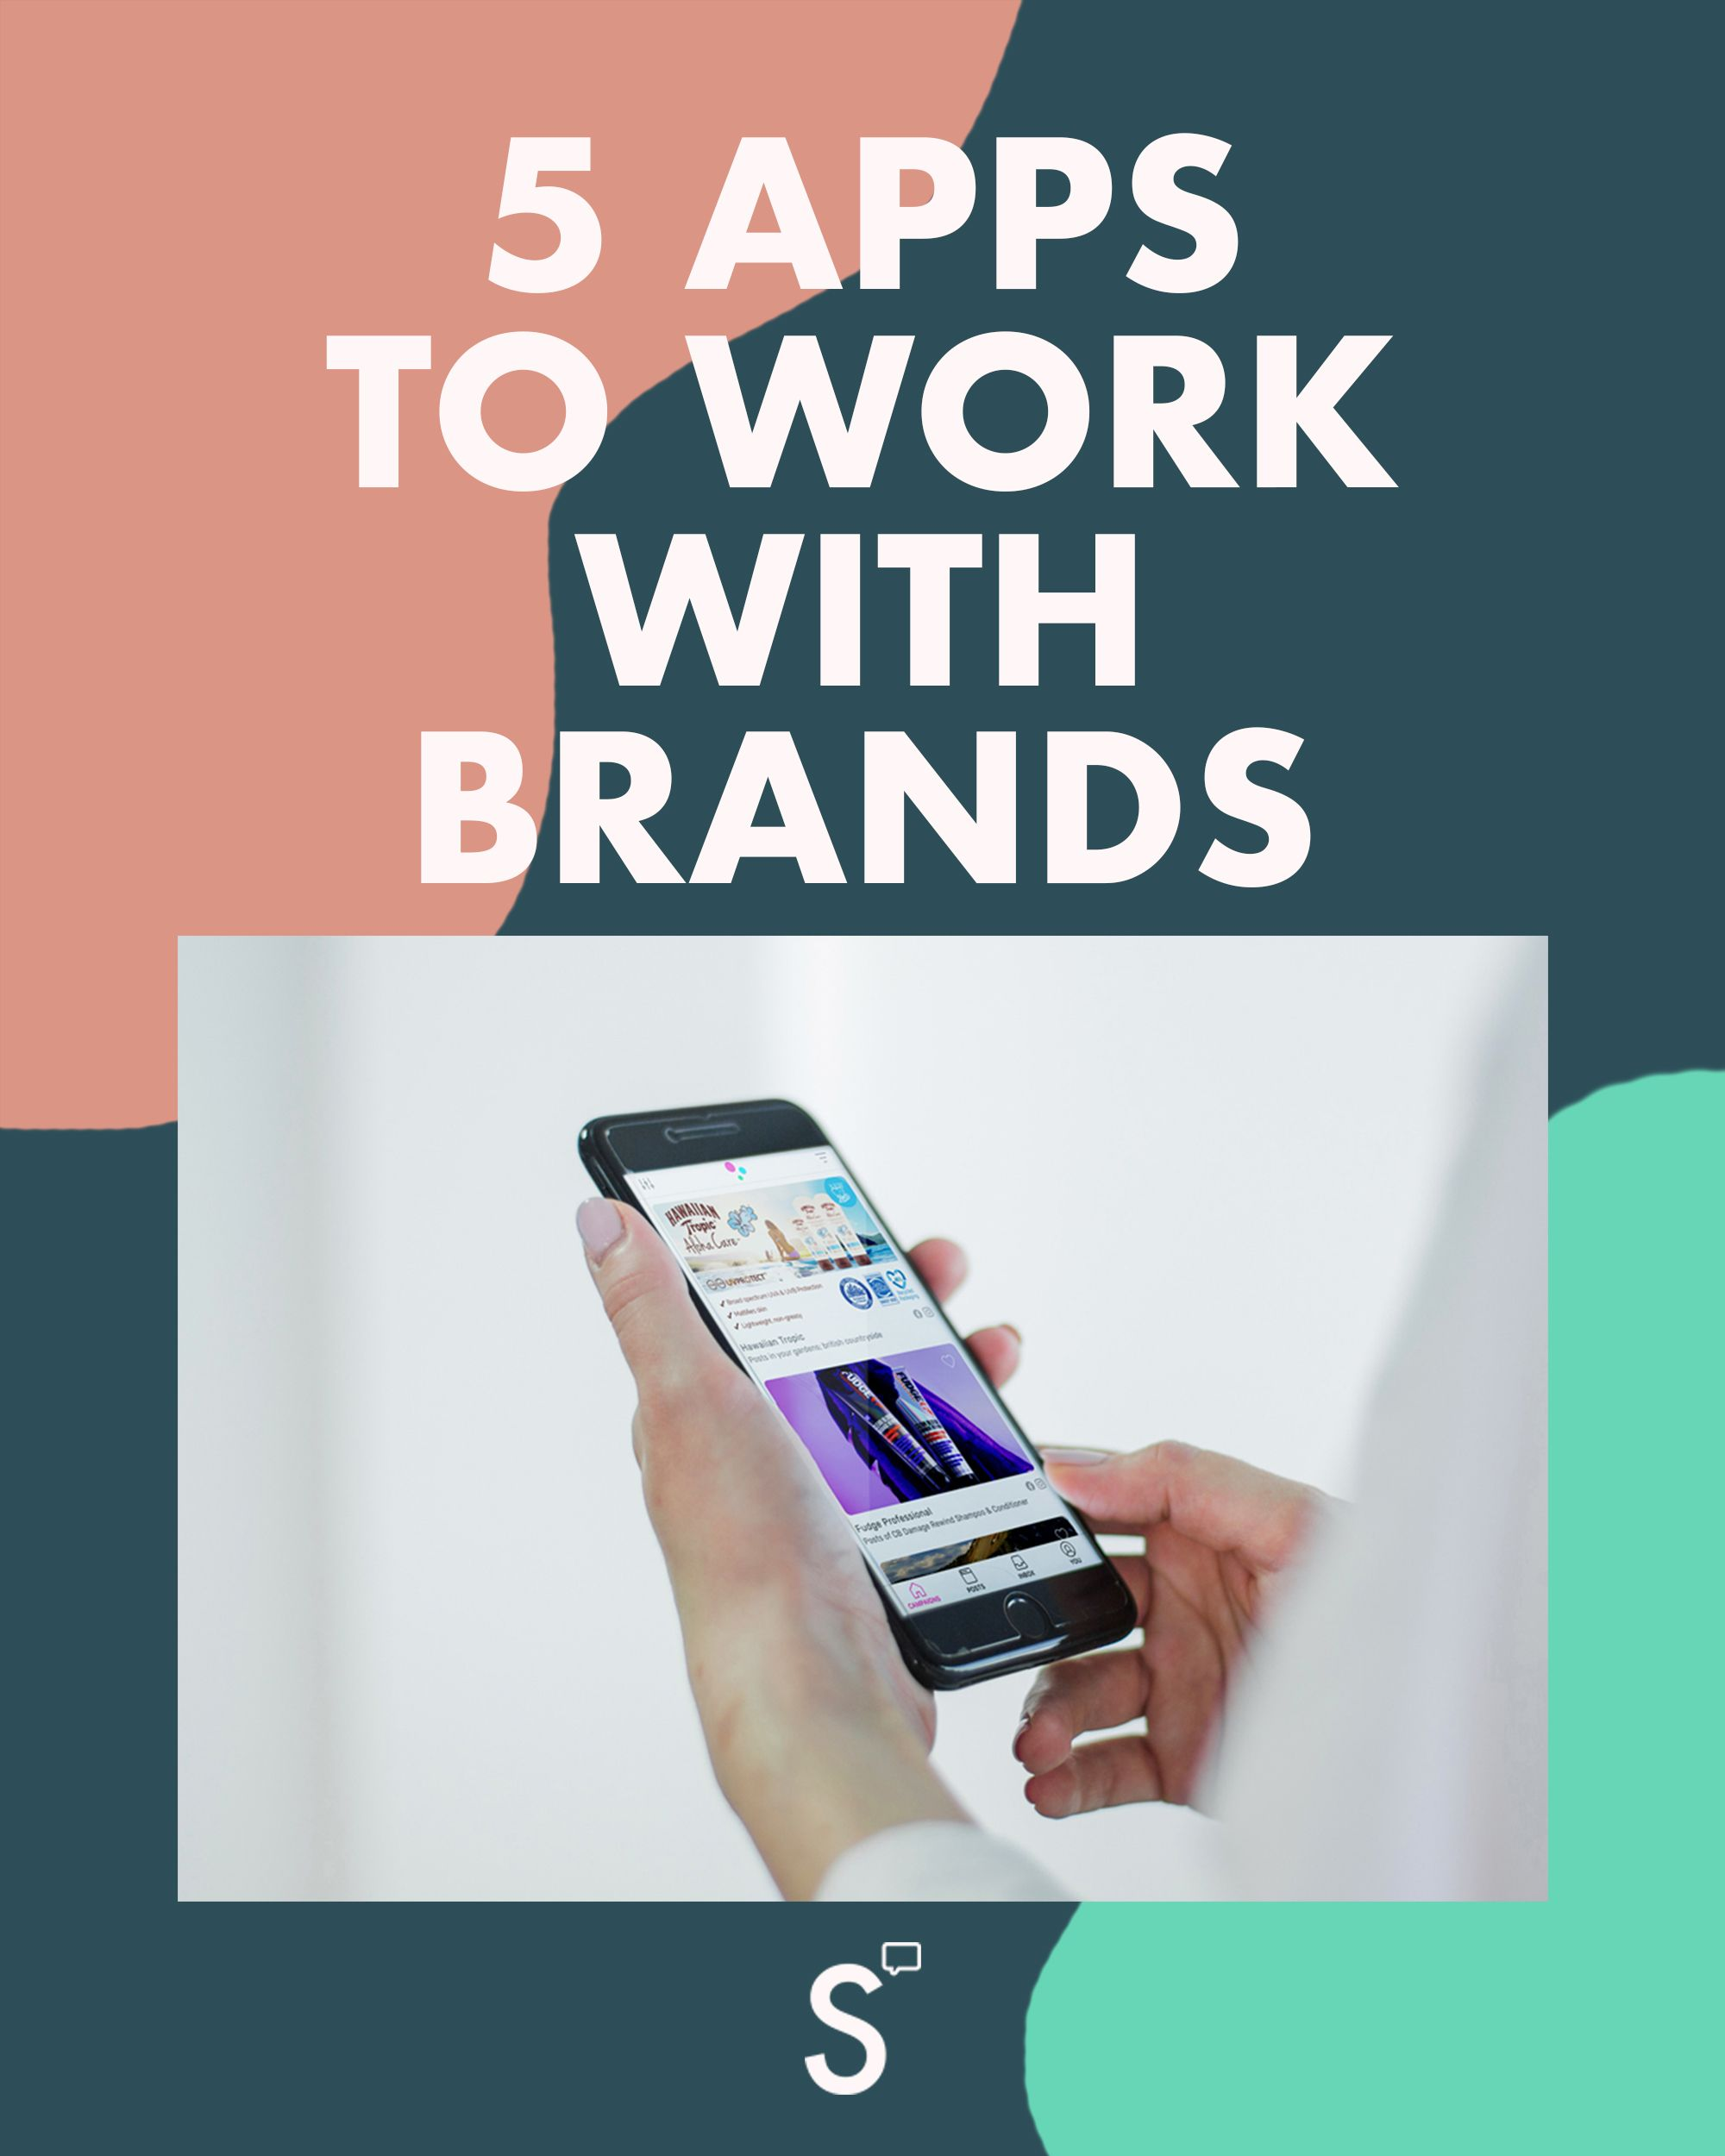 5 apps to work with brands influencer tips working